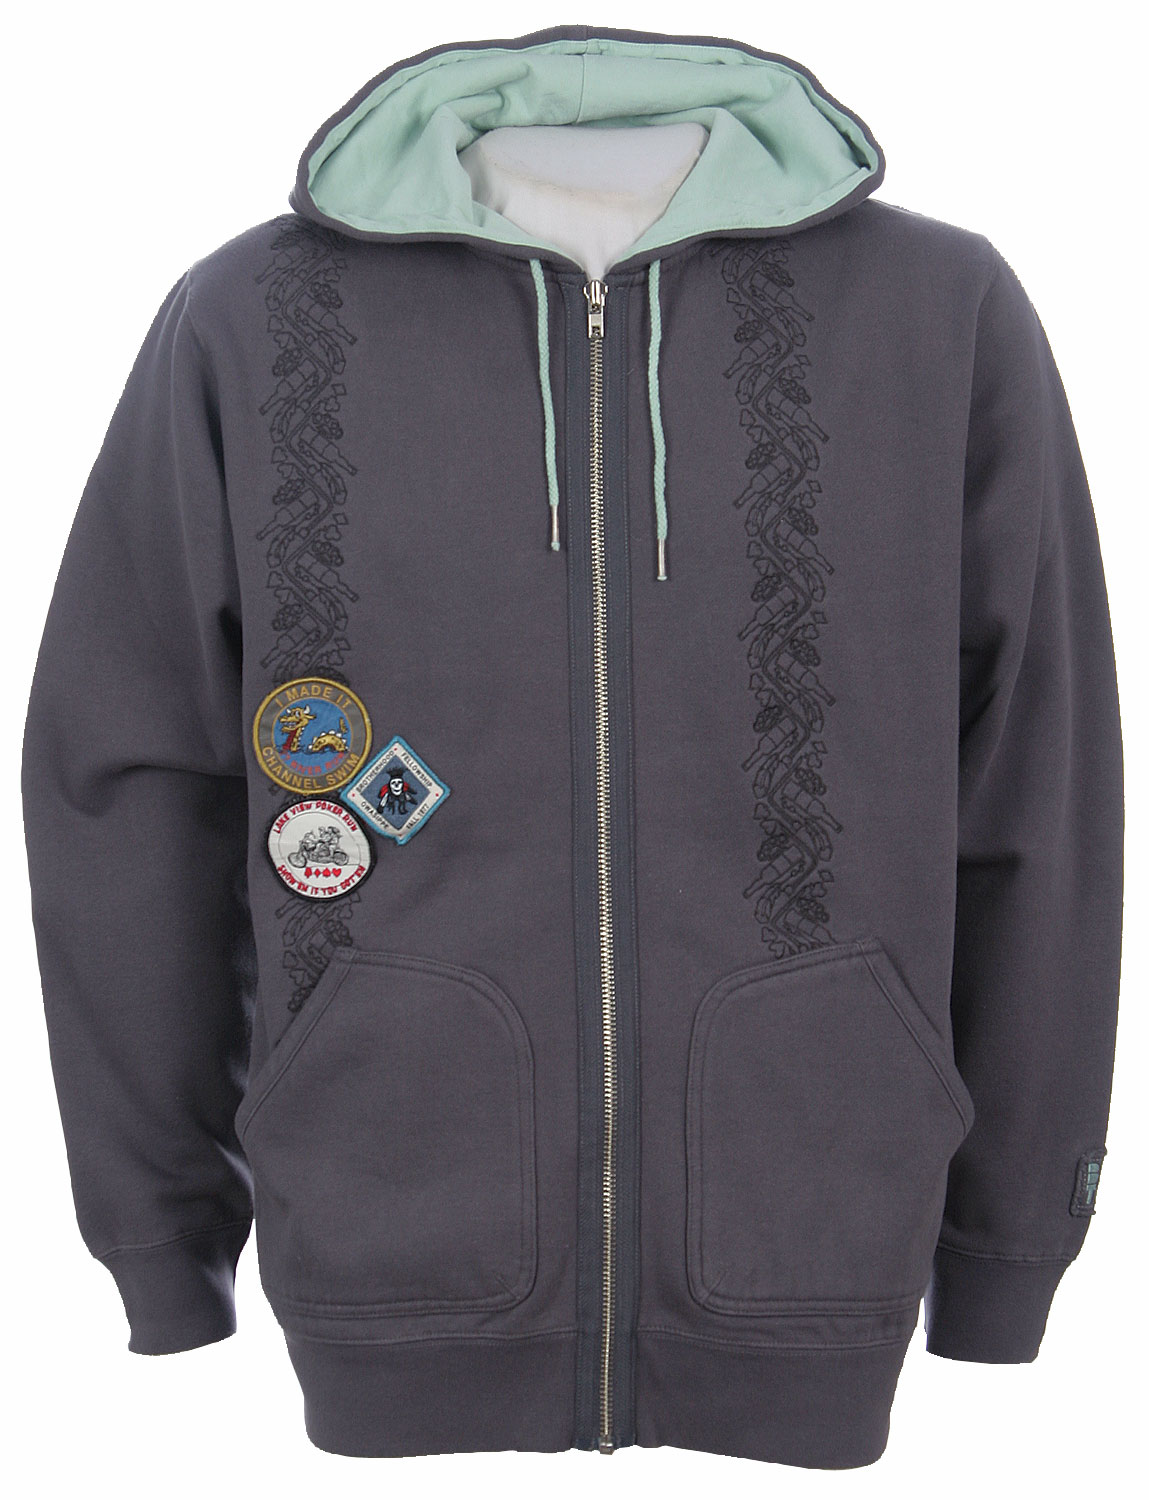 Snowboard A hooded sweatshirt with thick hide and cozy underside lining. The style of this one is something like boy scouts and a varsity jacket, as it has patches on it. The patches feature a happy sea monster dragon, a royal skeleton, and a creature speeding along on a motorcycle. Whatever earned these badges must've been fun. There's also a pattern along the sides of the front akin to collegiate honors.    Made of eighty-percent cotton and twenty-percent polyester, the warm hoodie can be bought in a number of sizes.Key Features of the Burton Noname Hoodie La Gray:  80% Cotton/20% Polyester. - $14.95